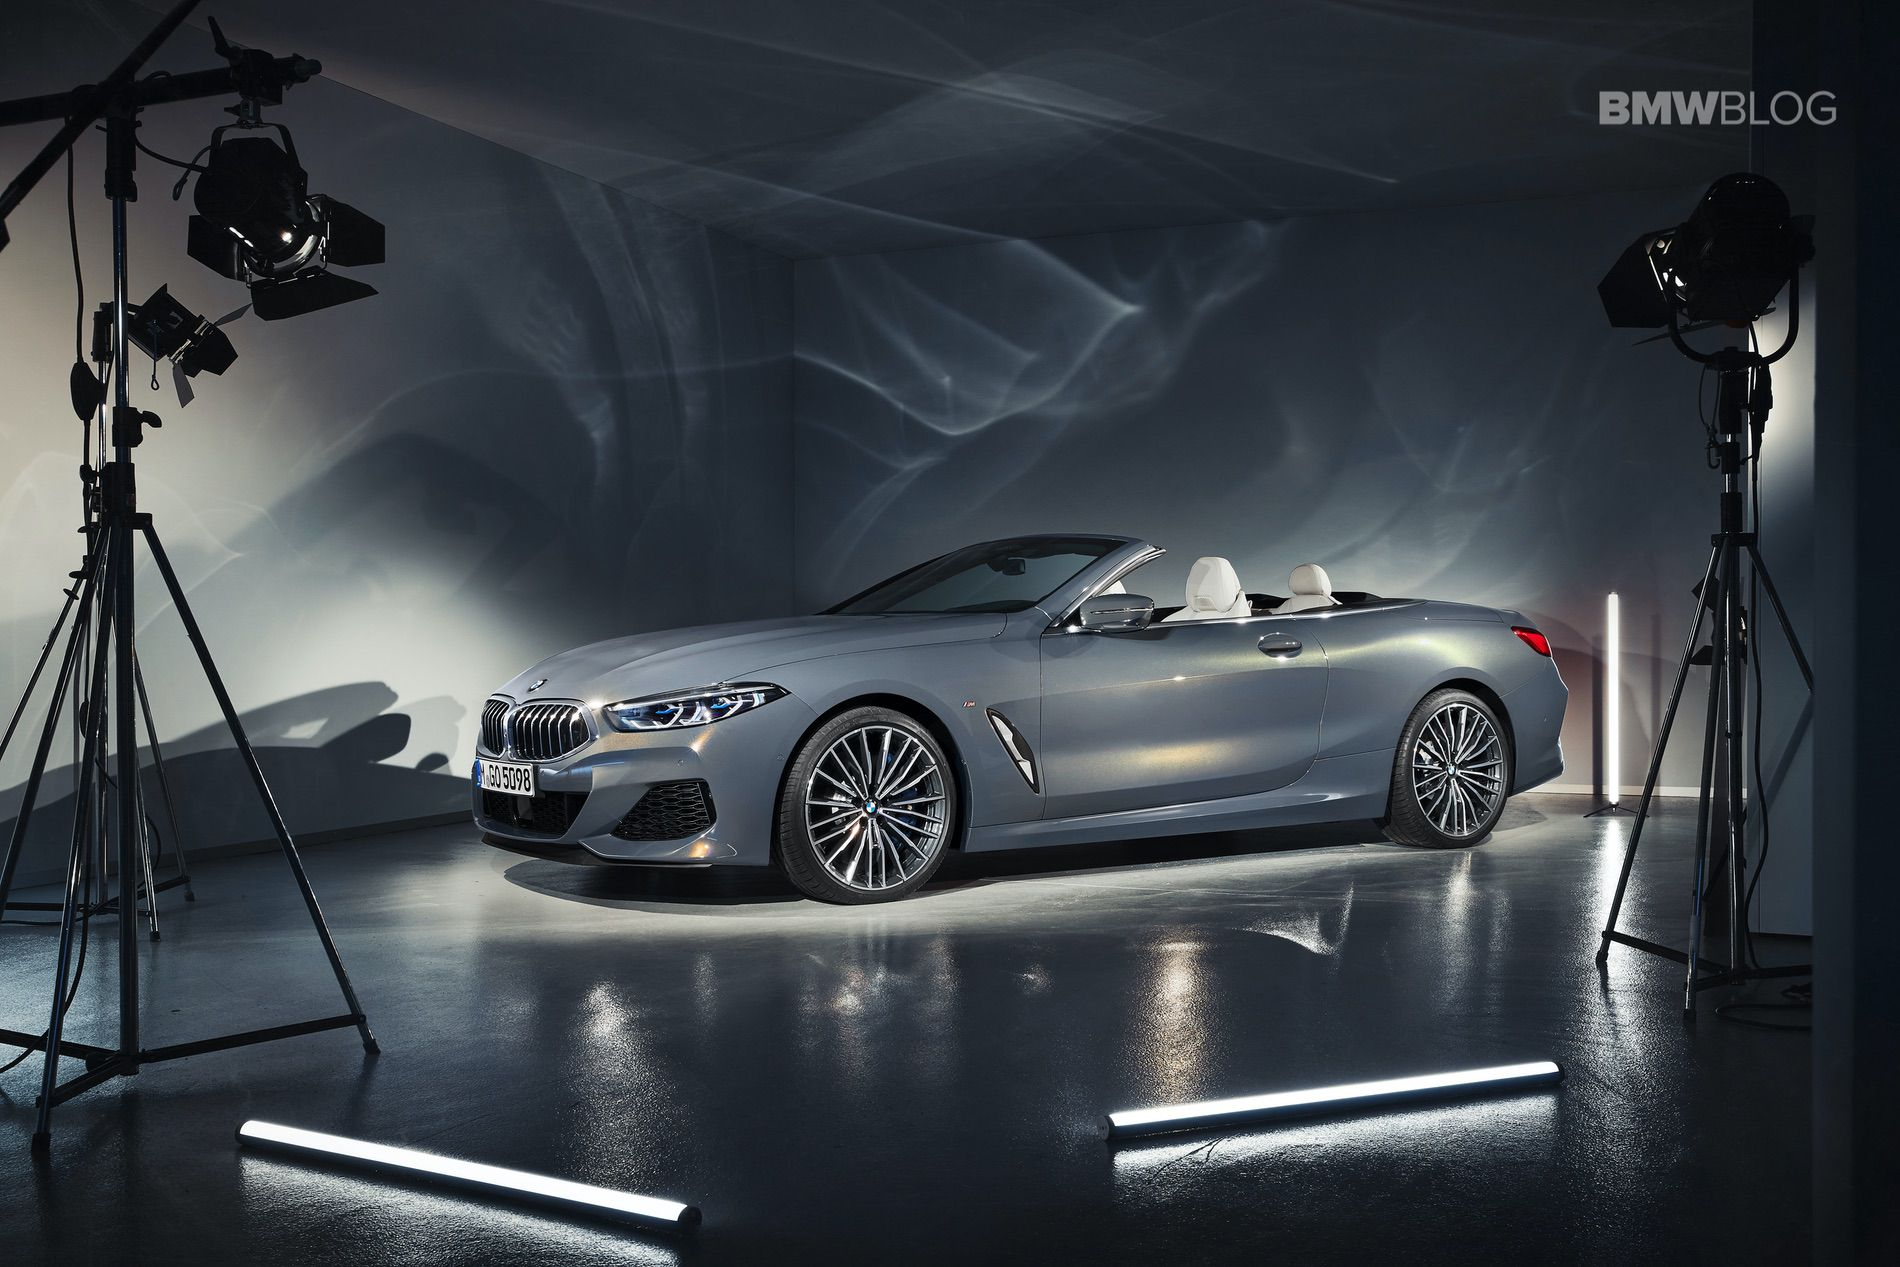 BMW 8 Series Convertible images 50